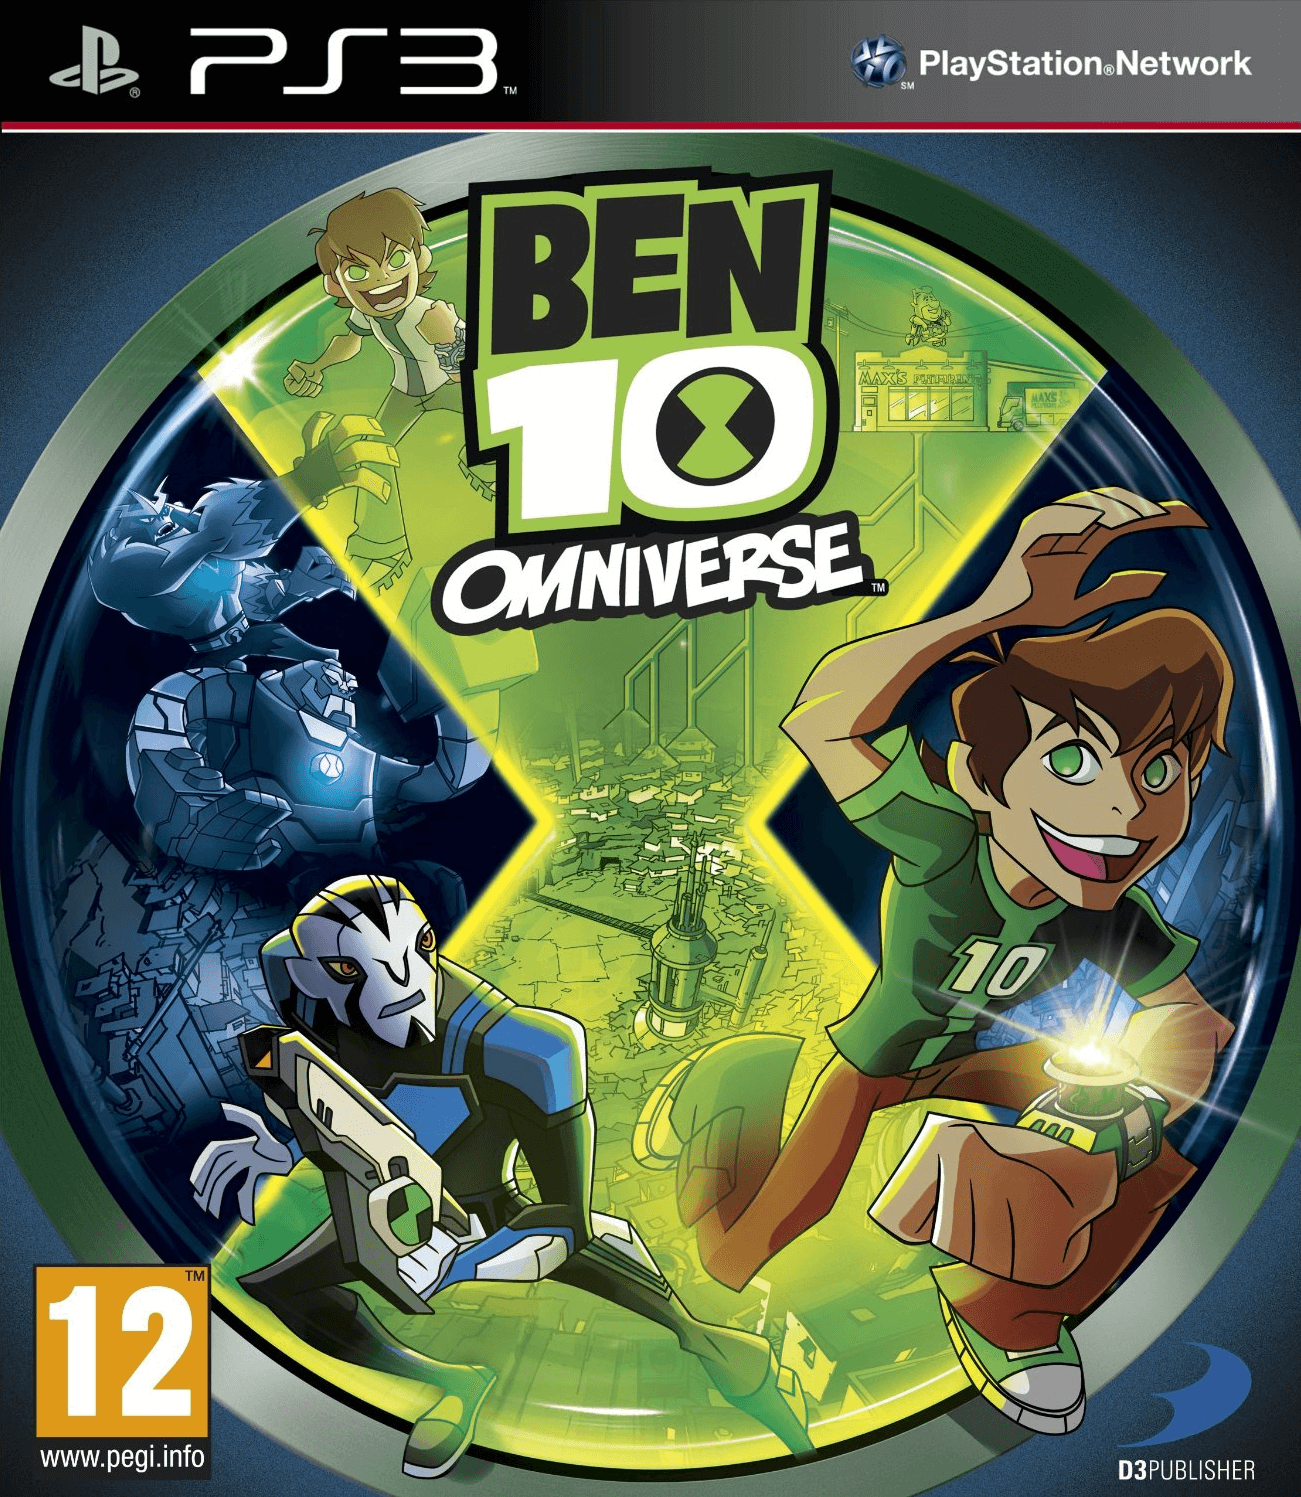 Ben 10 Omniverse 2 (PS3) PS3 Game - Shamy Stores